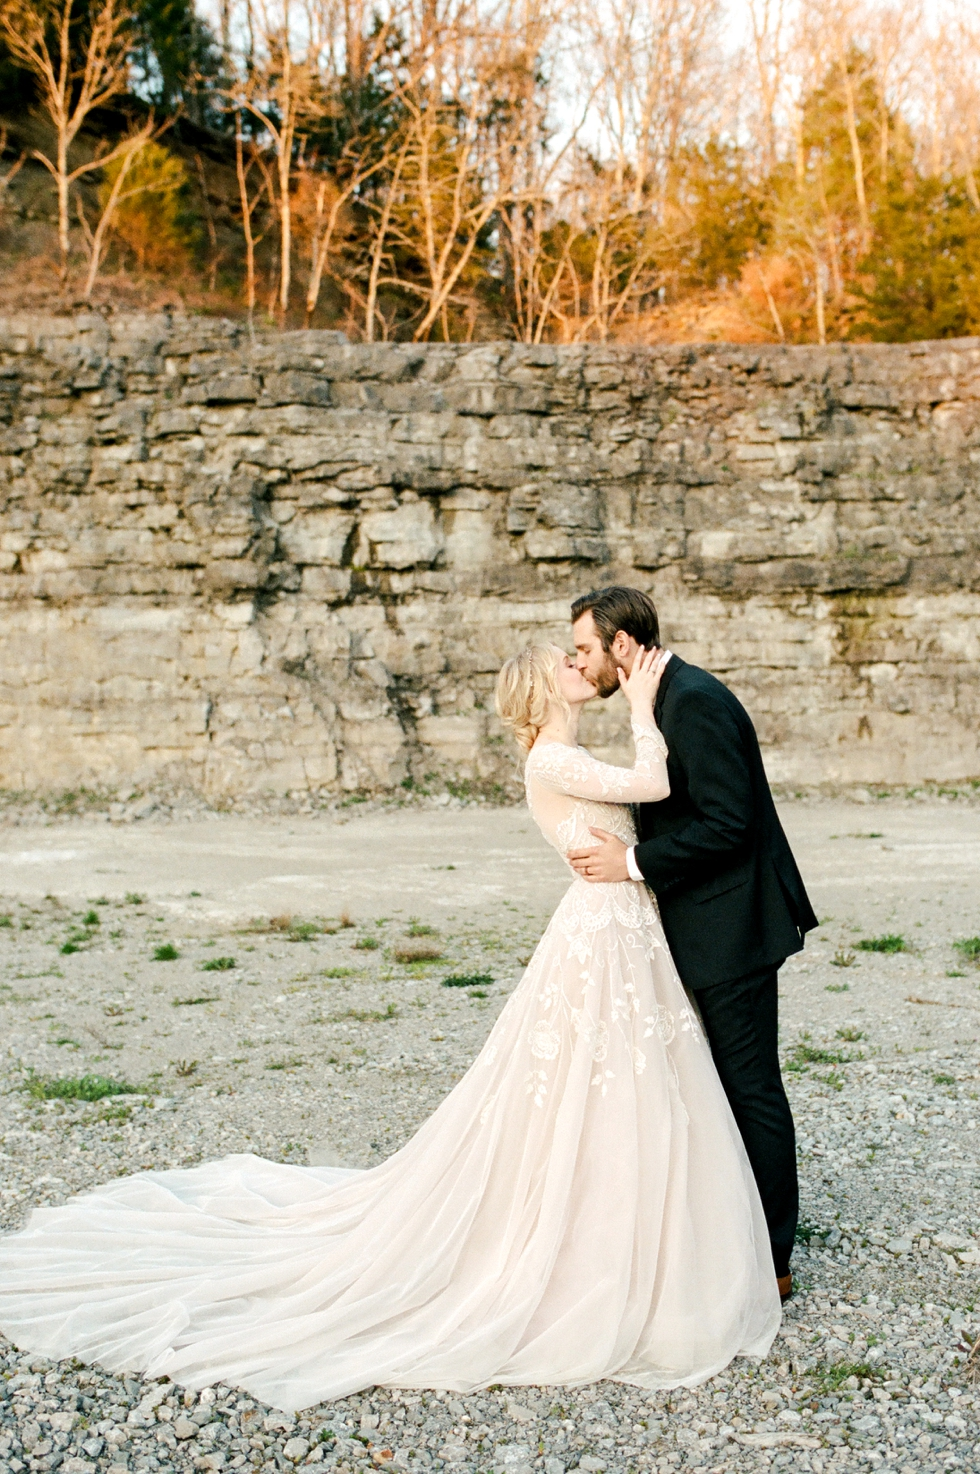 Nashville Wedding Photographer at Graystone Quarry